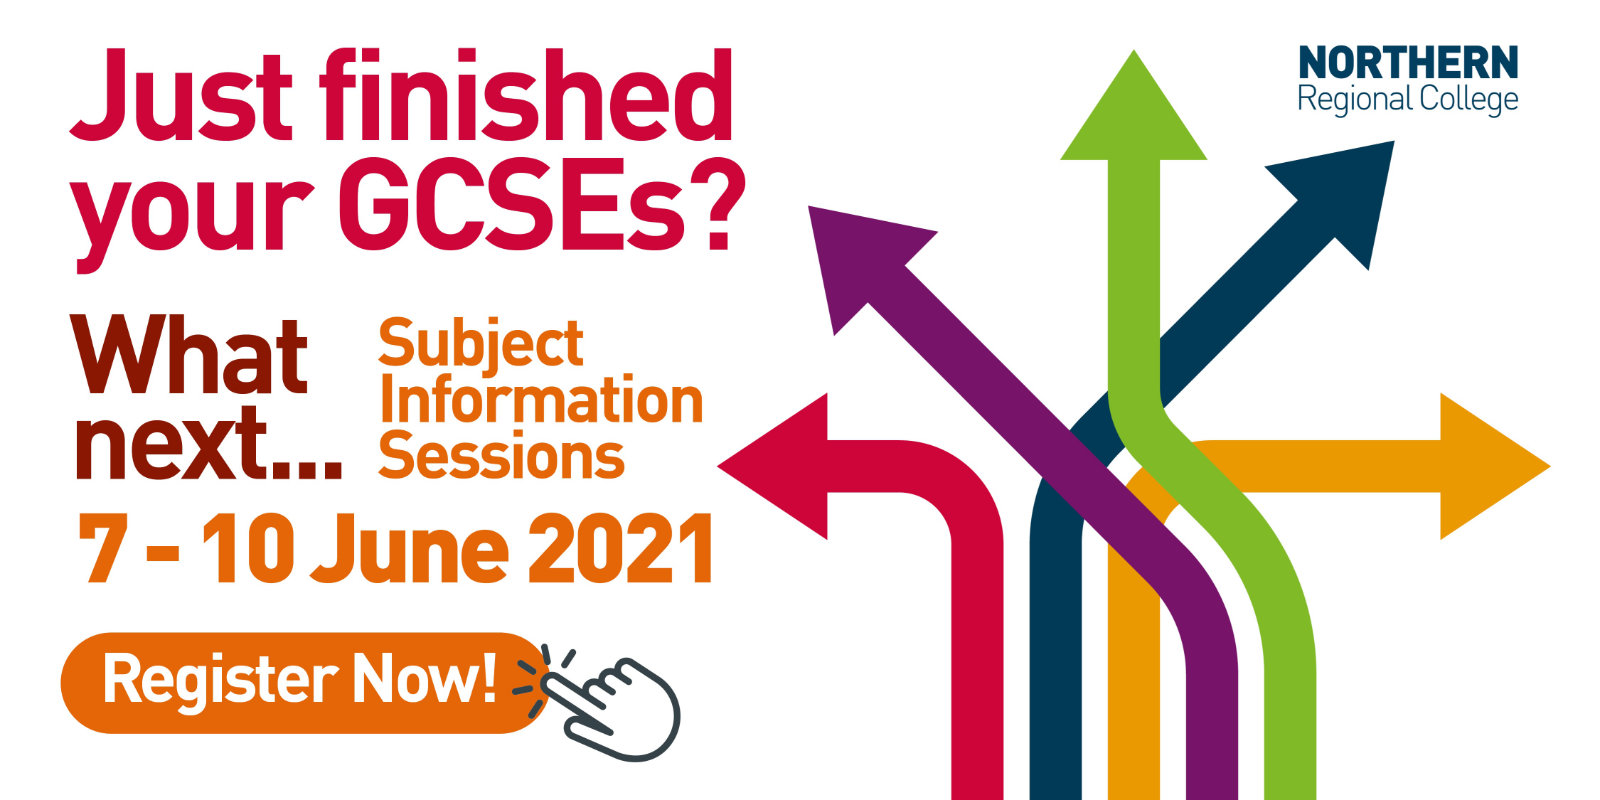 Subject information sessions for Further Education, 7-10 June 2021.